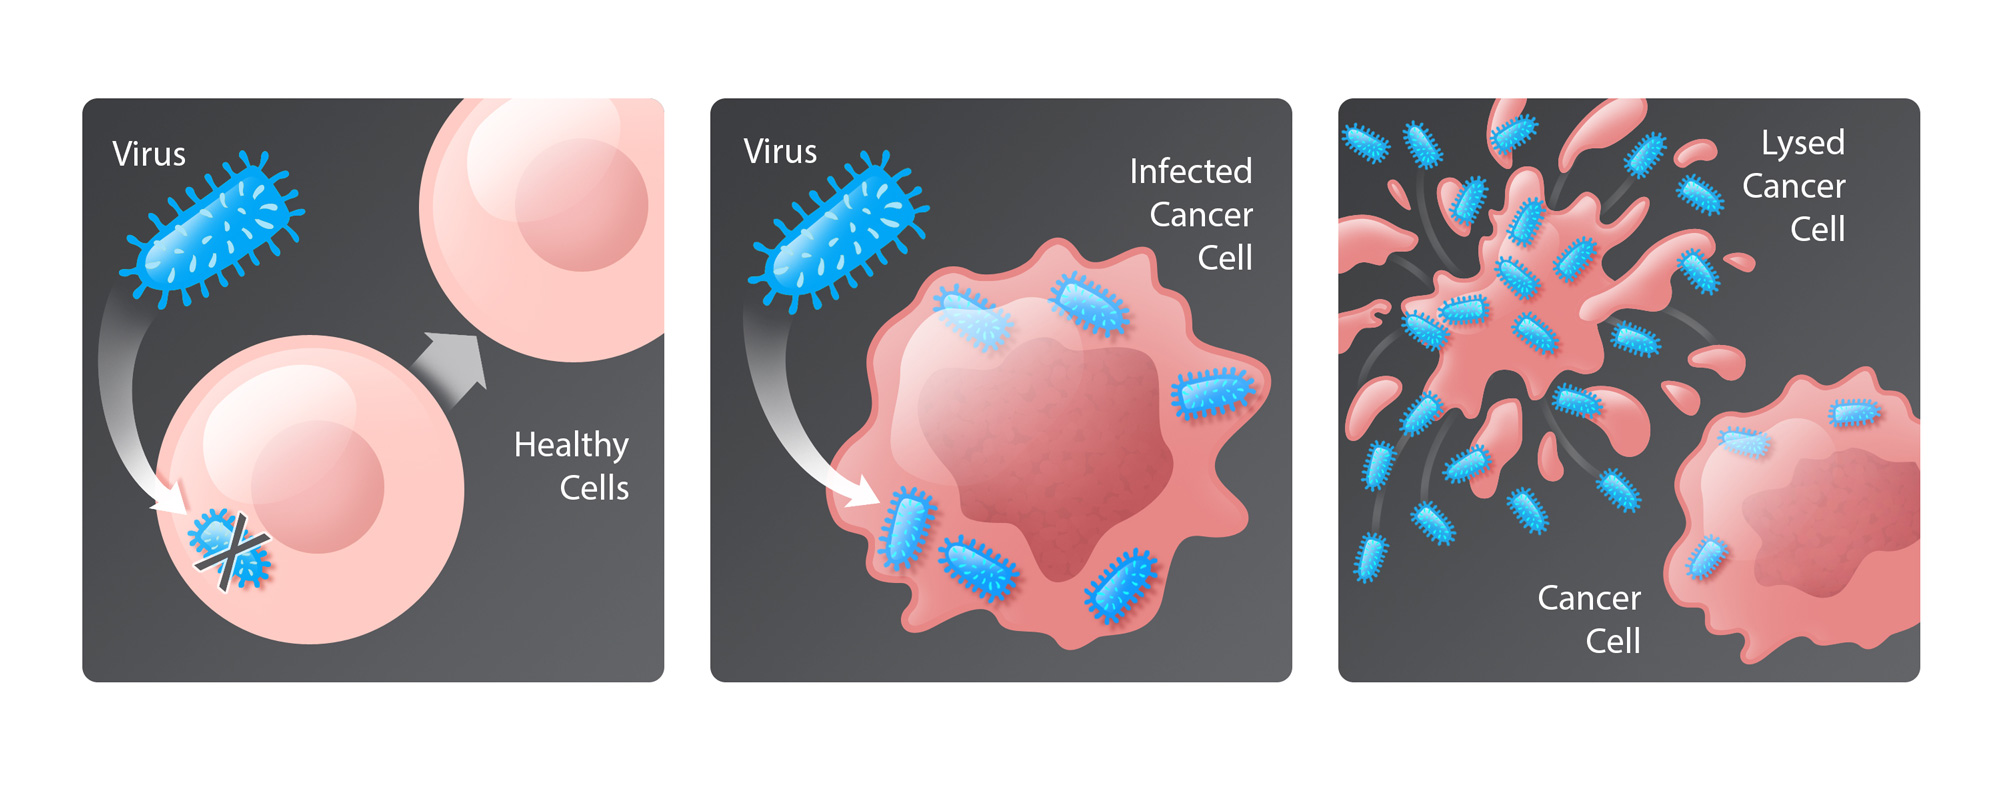 Oncolytic virus cancer therapy